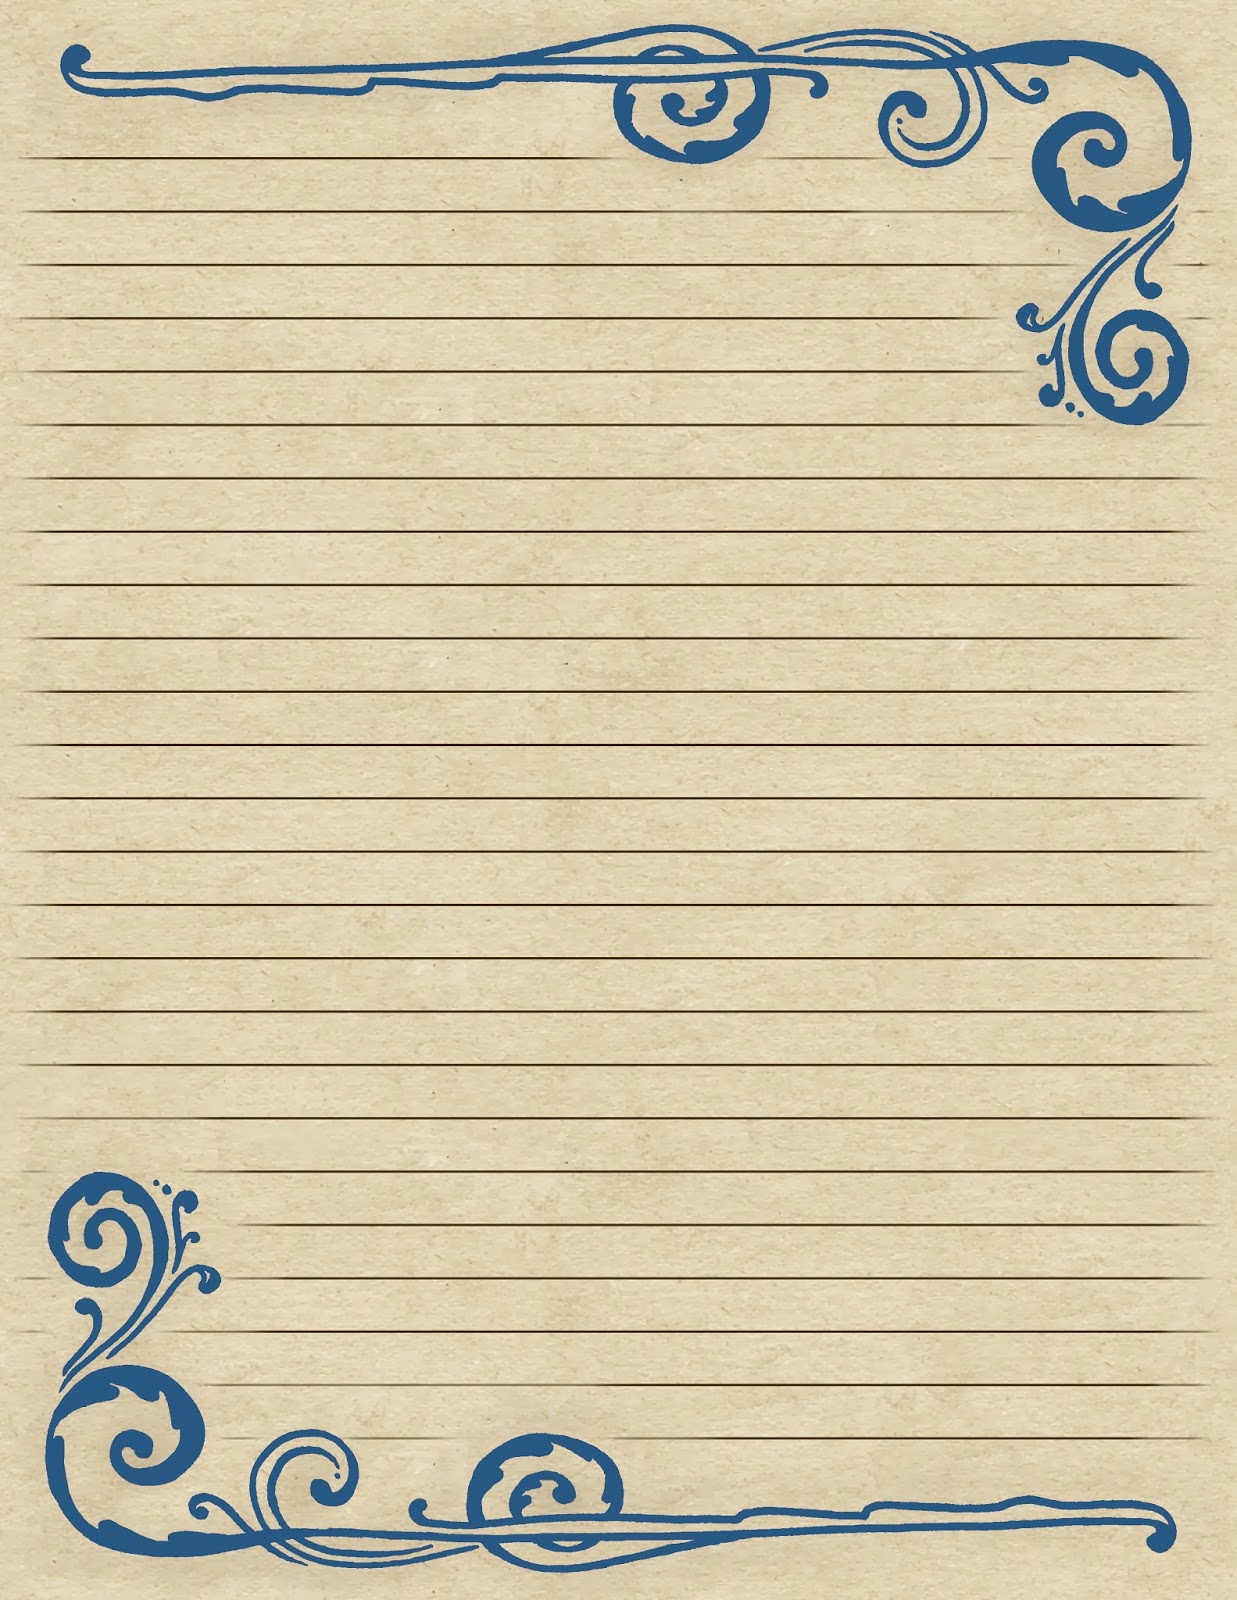 Free Lined Paper Cliparts, Download Free Clip Art, Free